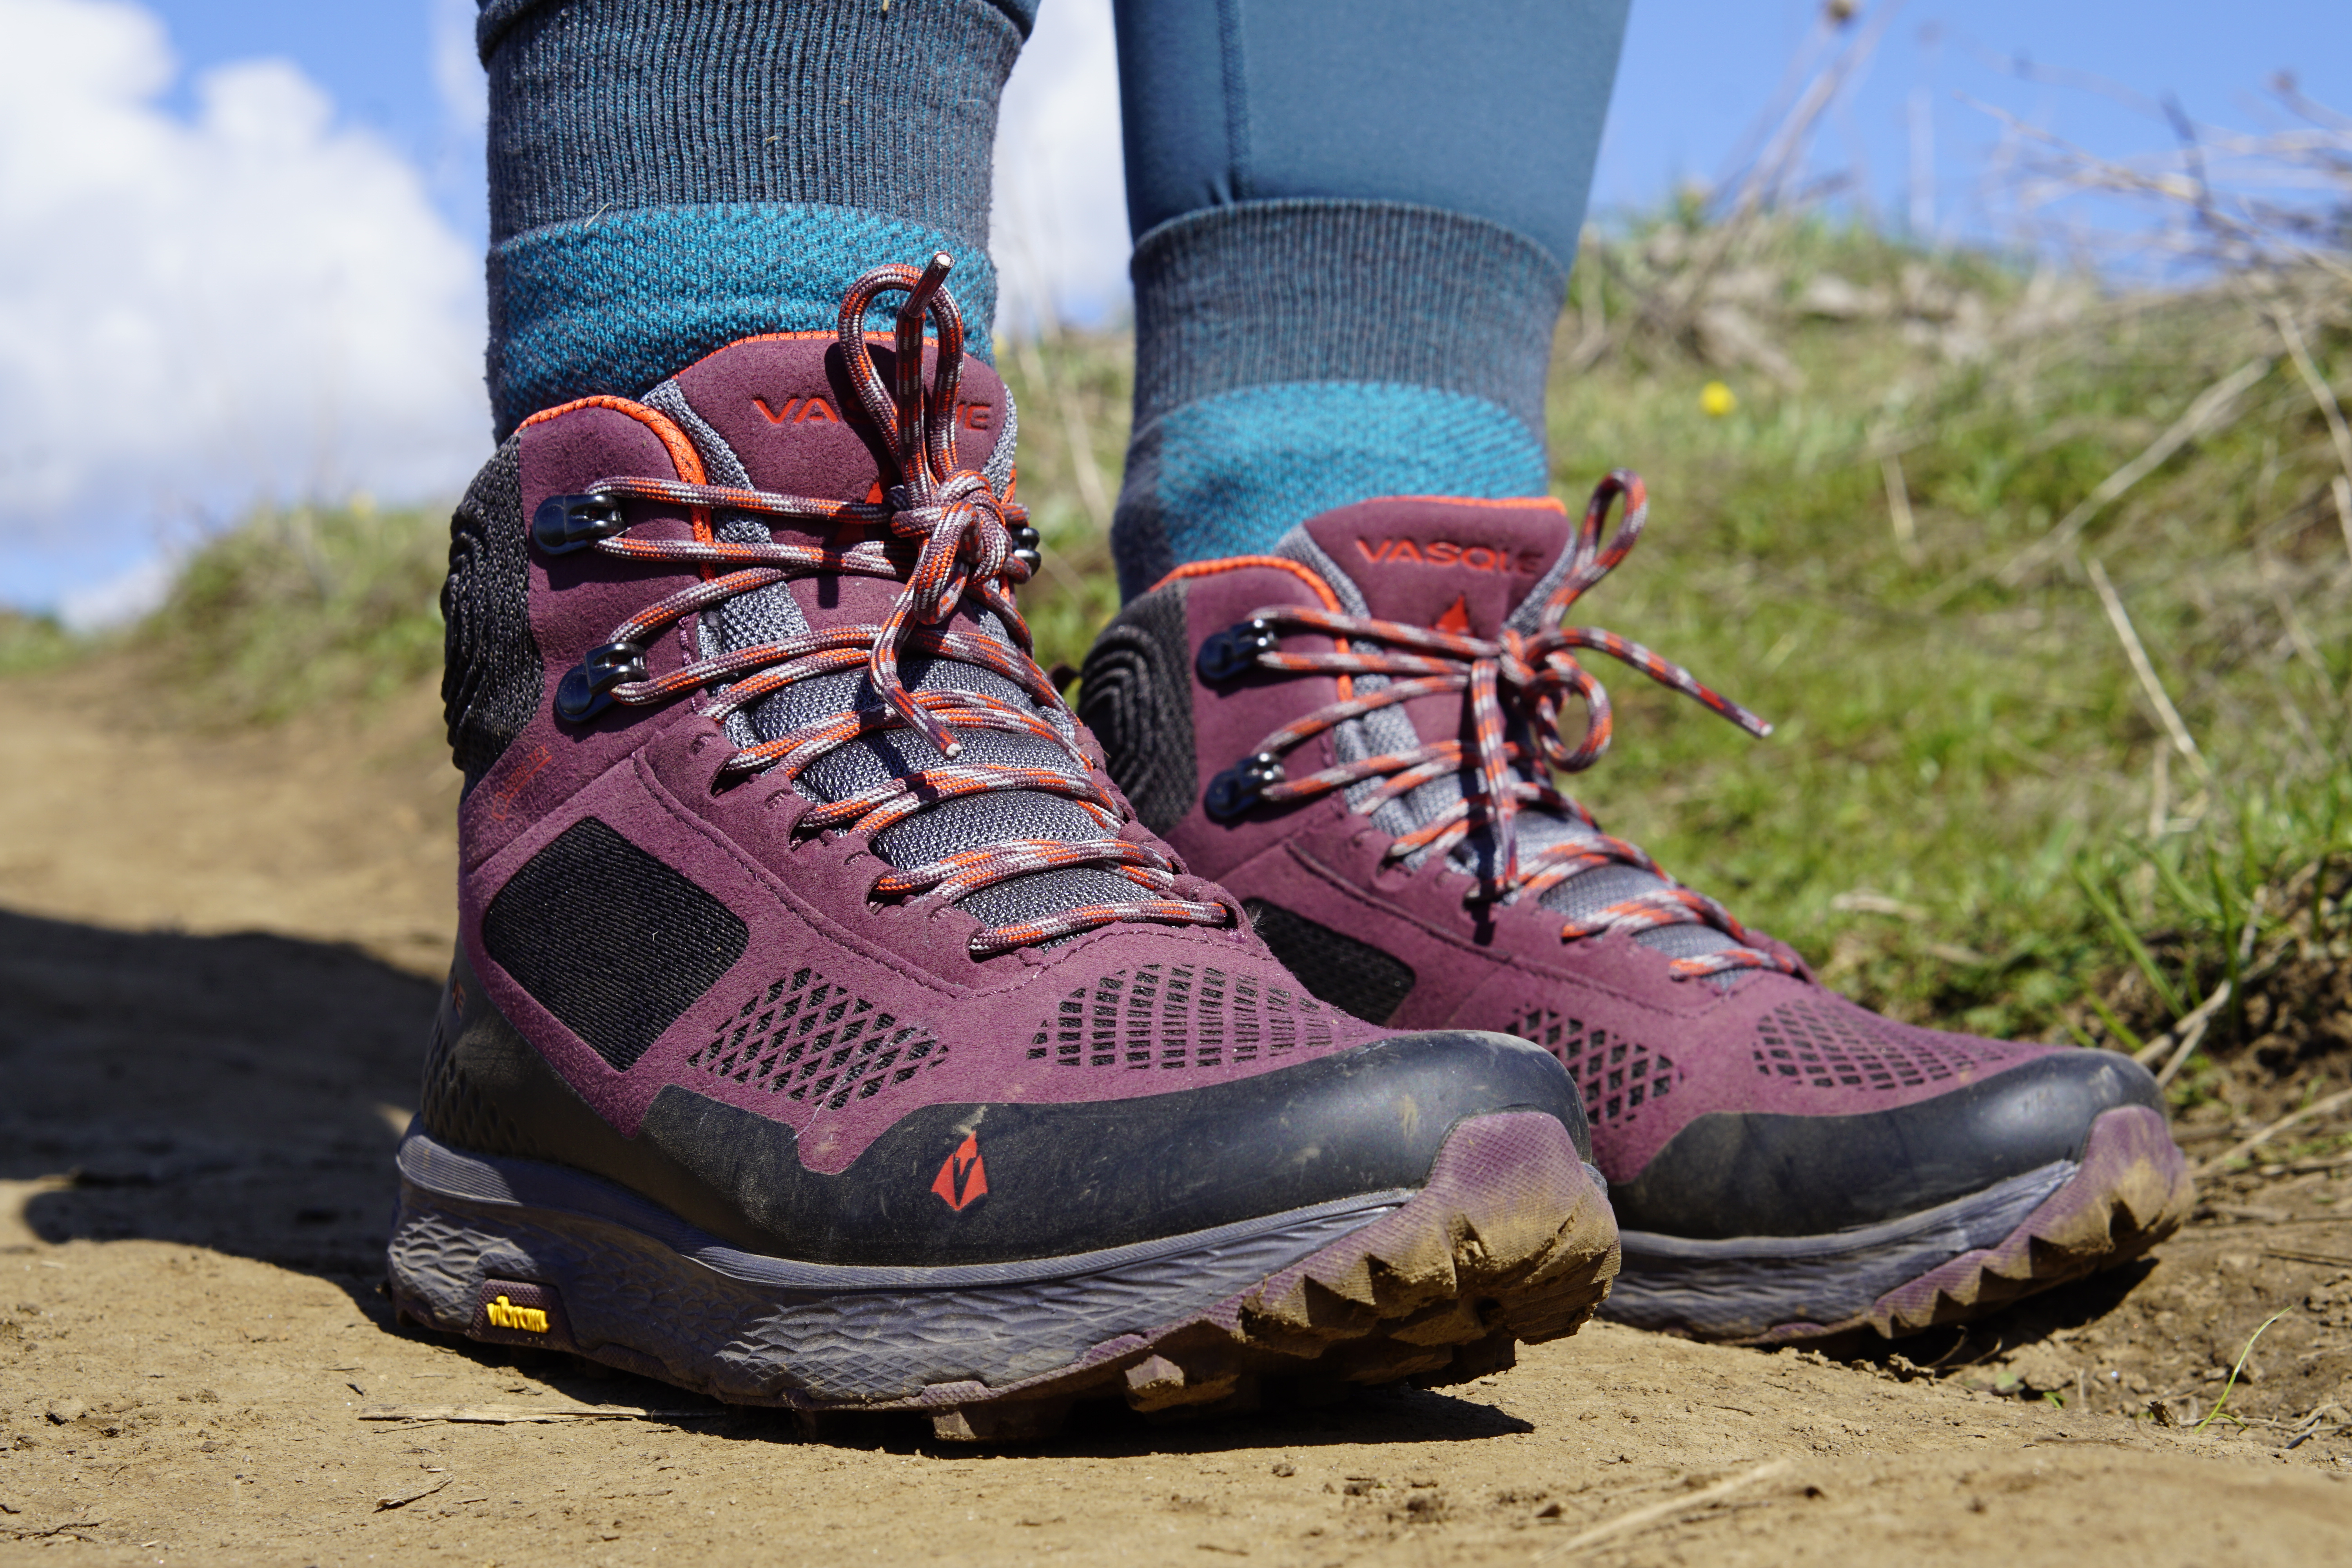 Review: Vasque Breeze LT GTX Hiking Boots